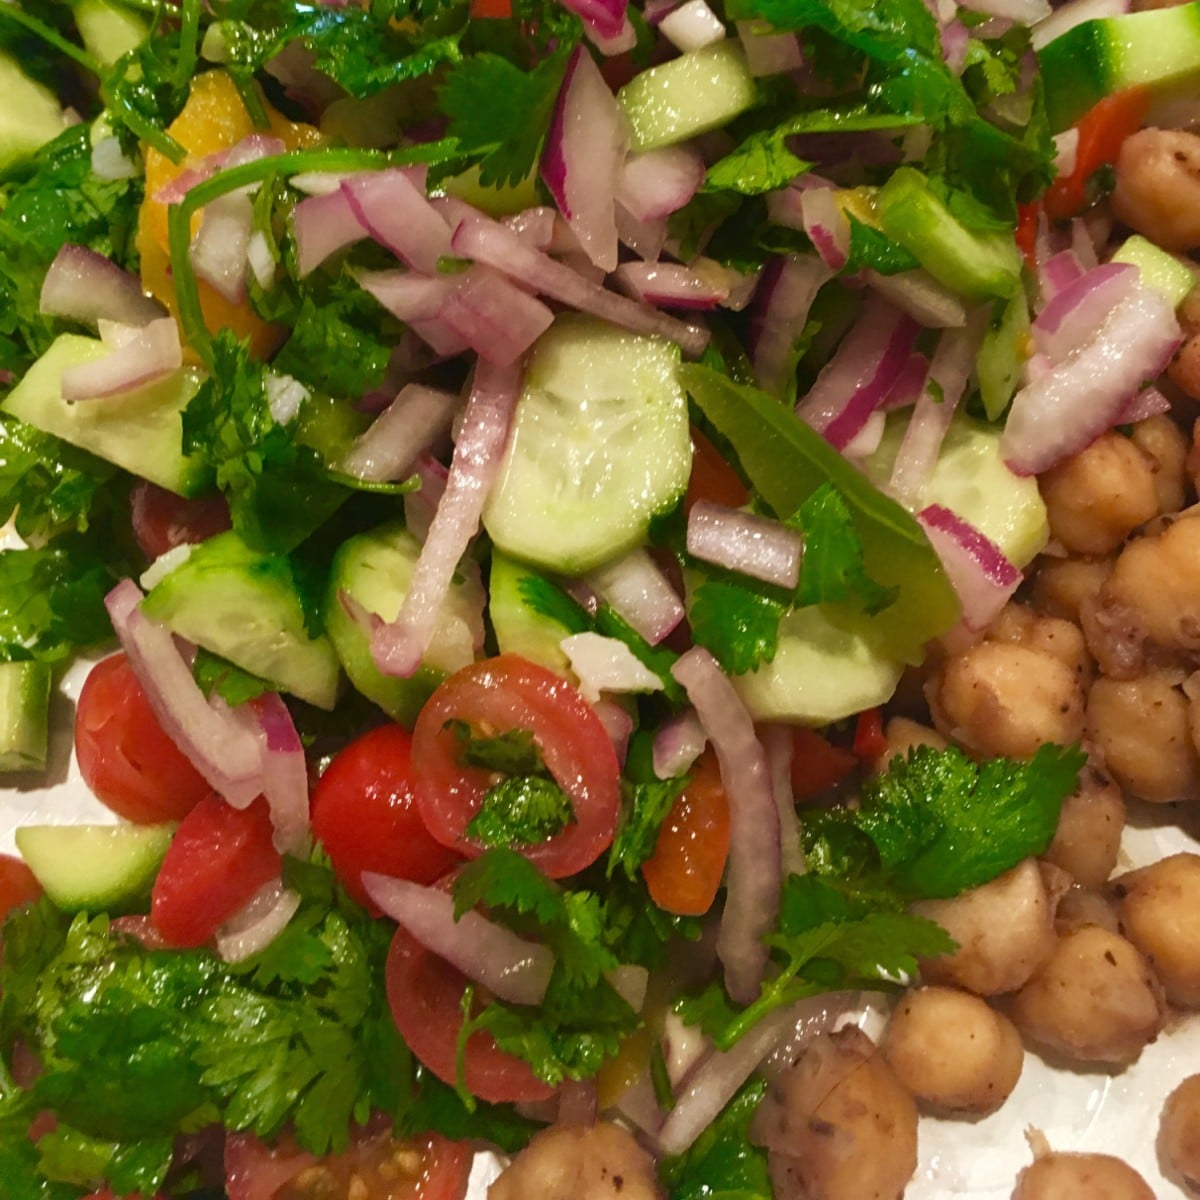 This salad is a great way to incorporate more veggies into your diet this Ramazan